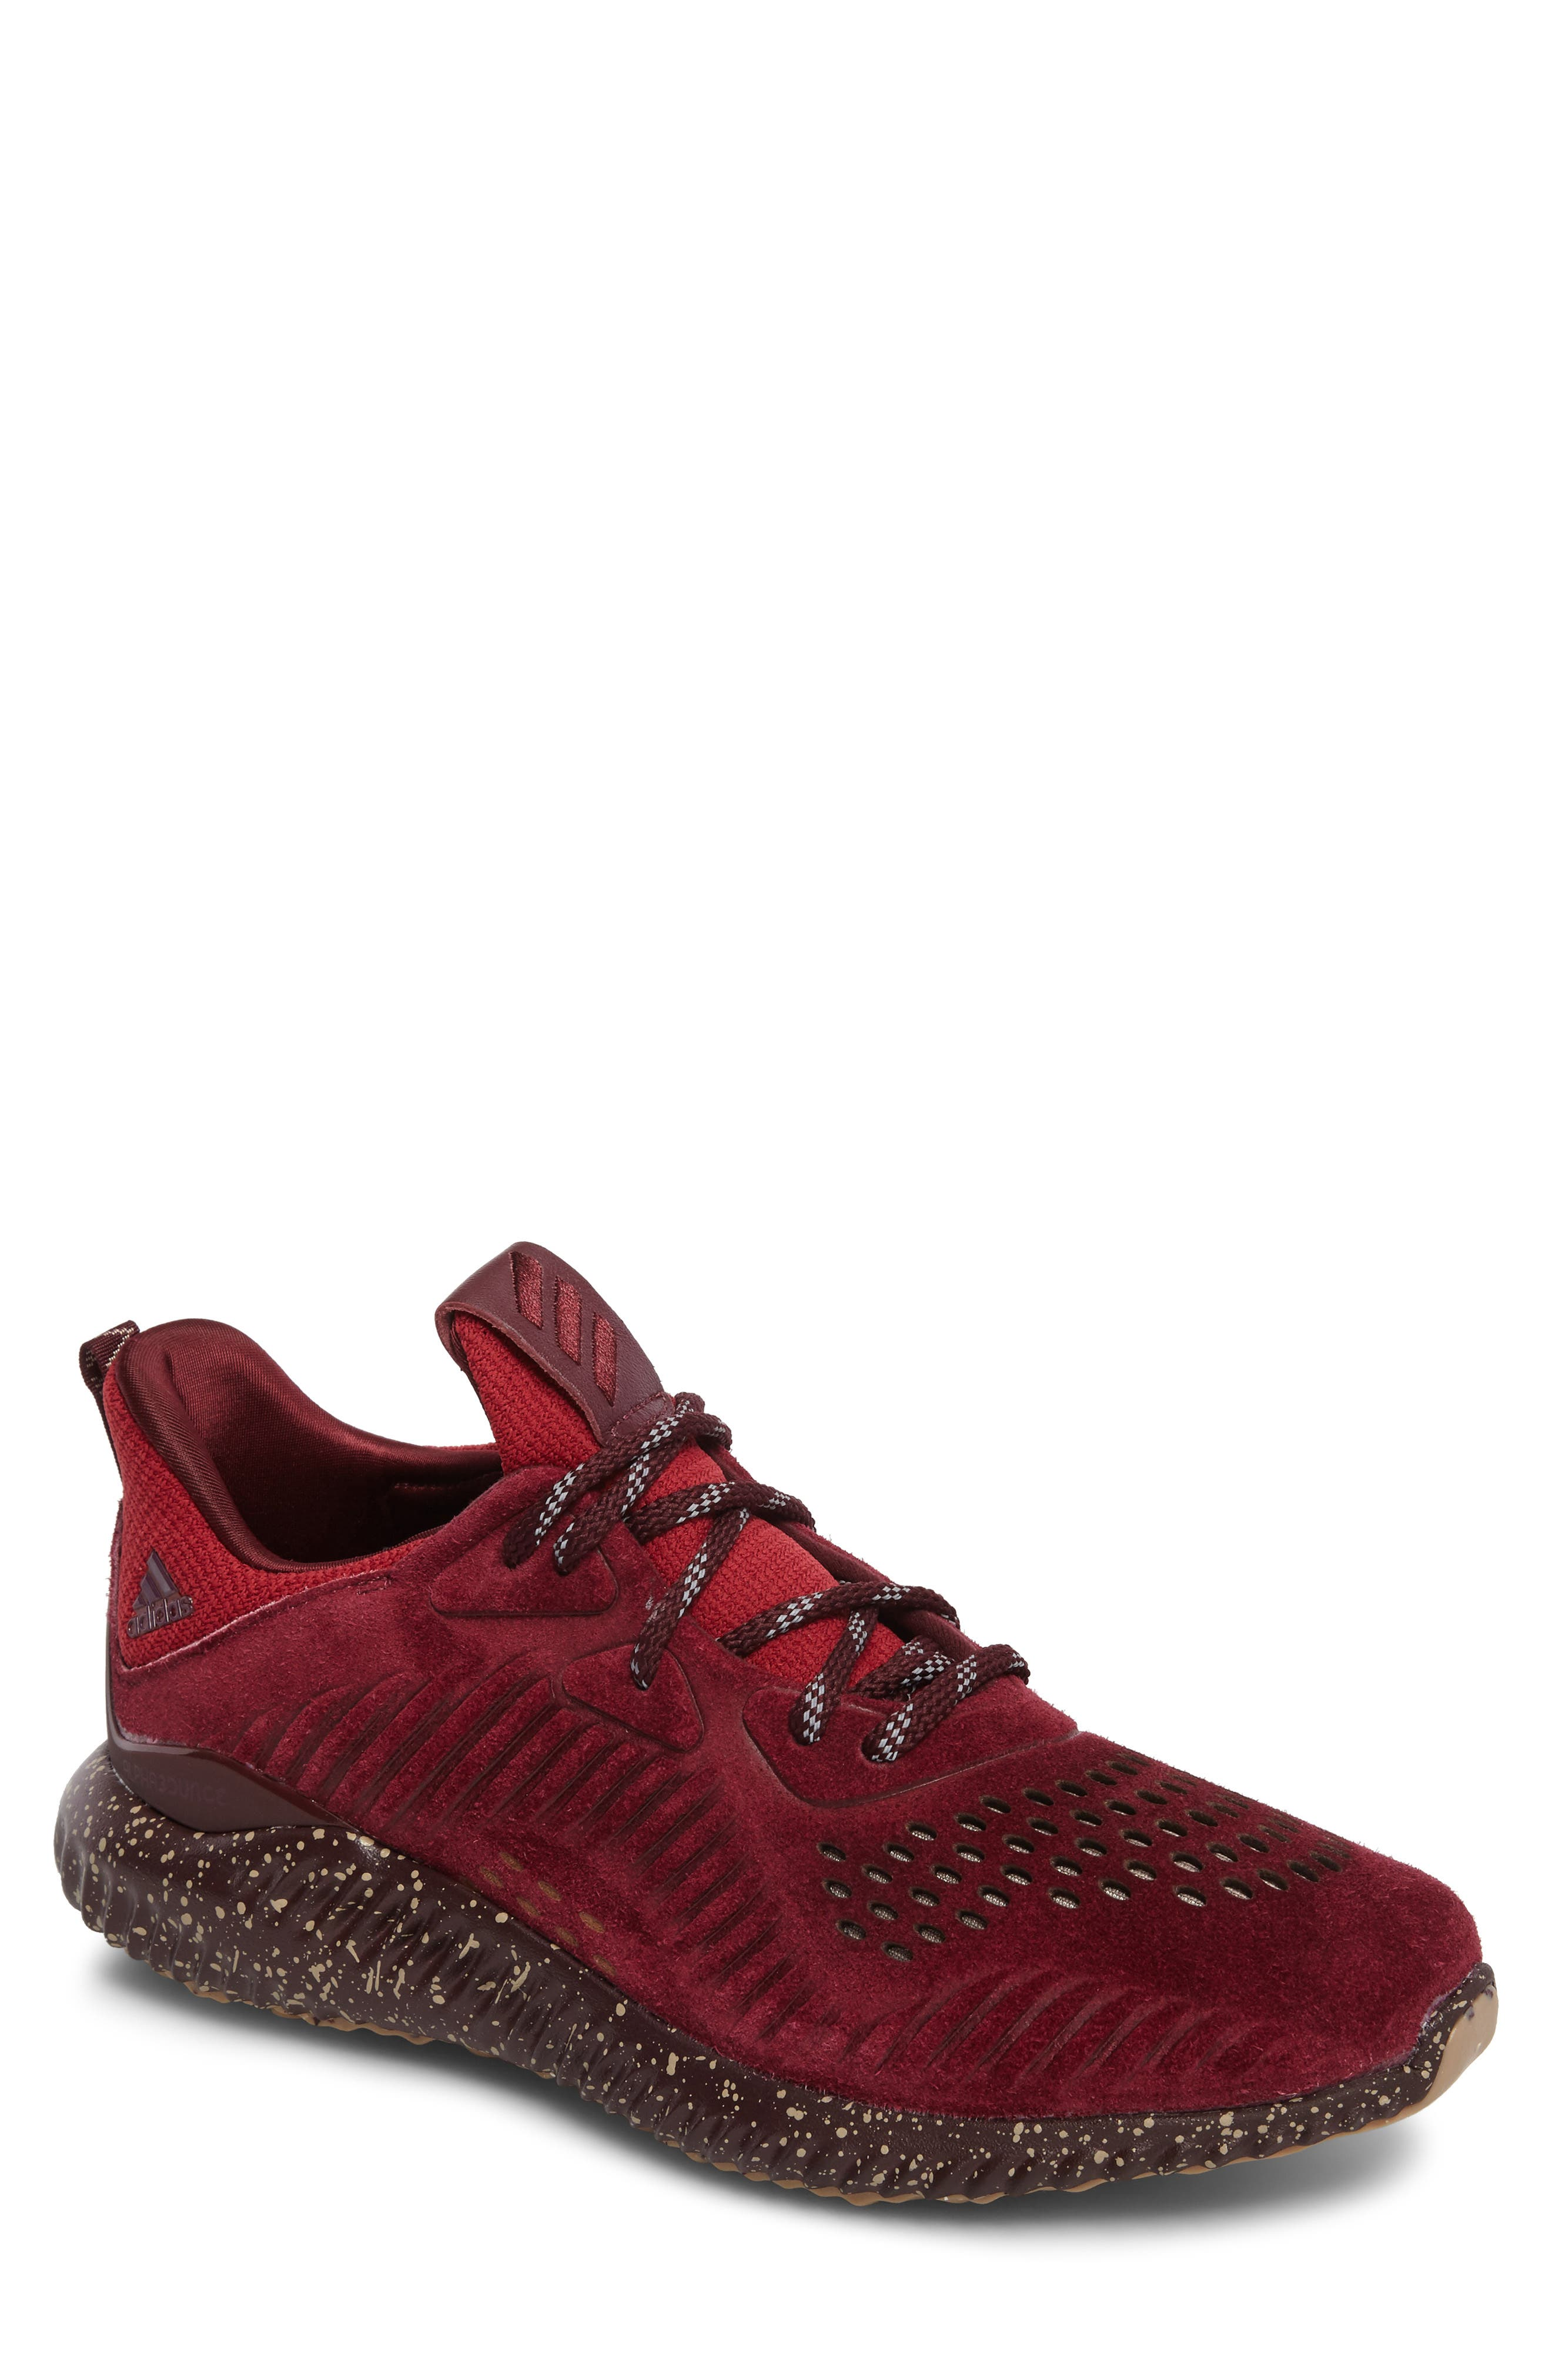 AlphaBounce LEA Running Shoe,                             Main thumbnail 2, color,